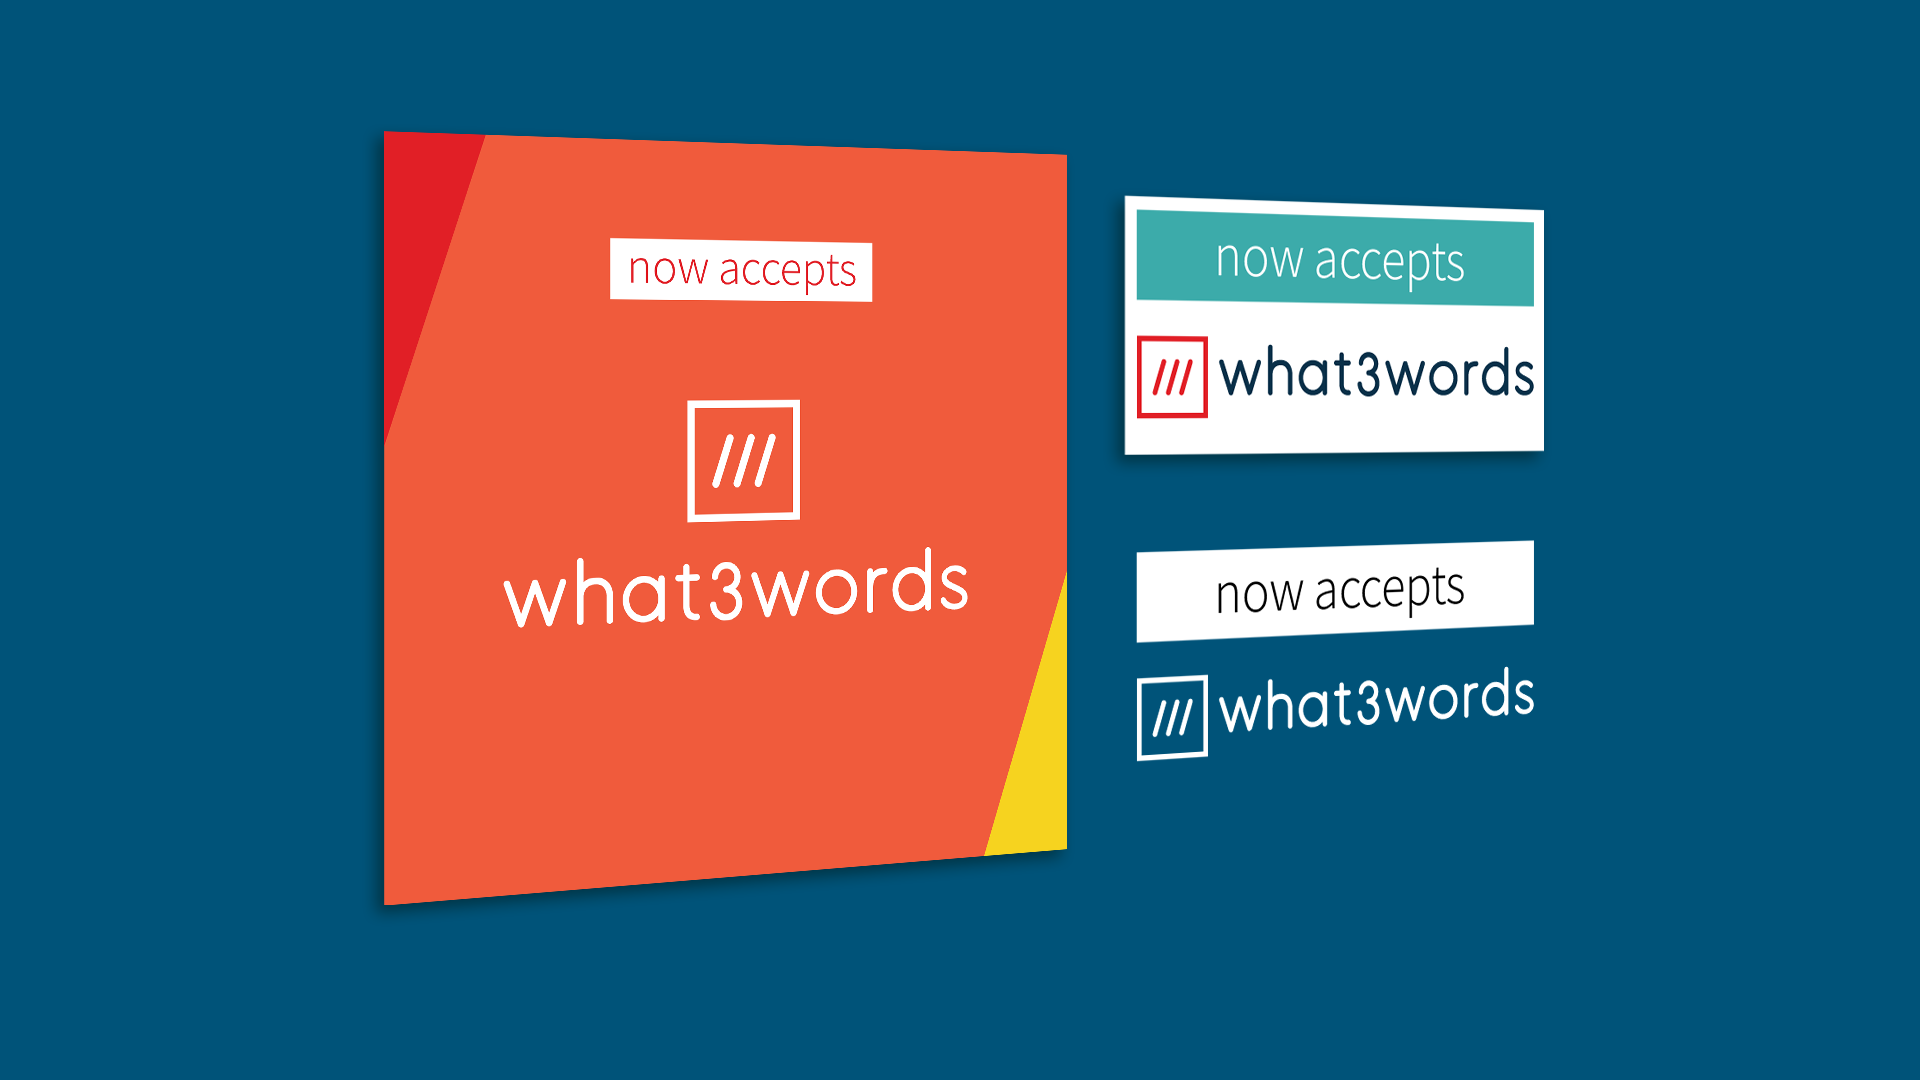 Variation of what 3 words 'now accepts' graphics